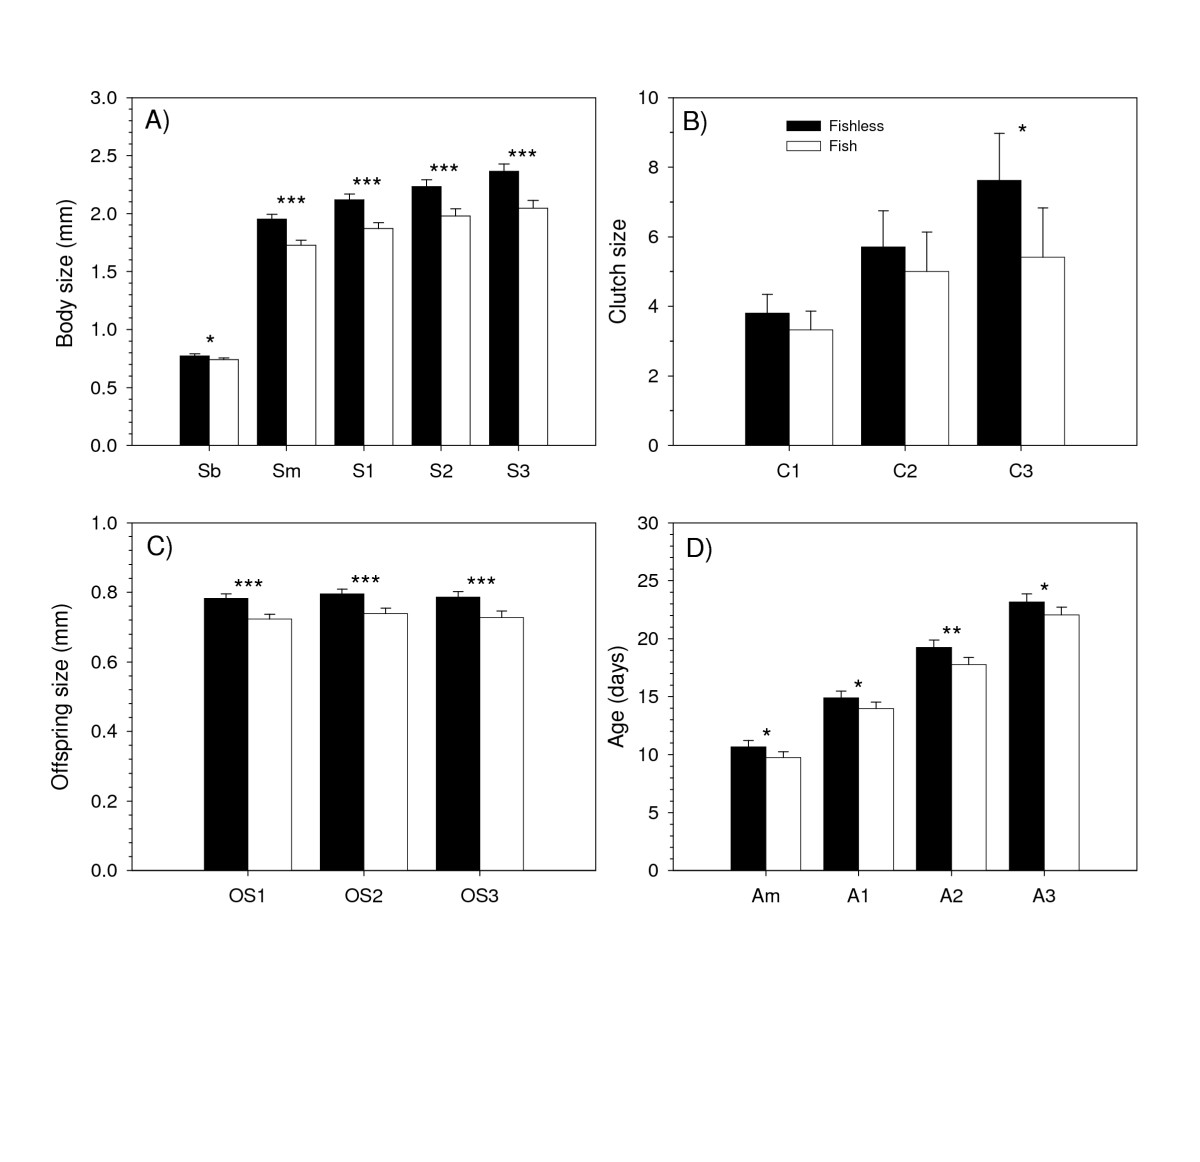 http://static-content.springer.com/image/art%3A10.1186%2F1471-2148-7-22/MediaObjects/12862_2006_Article_316_Fig1_HTML.jpg